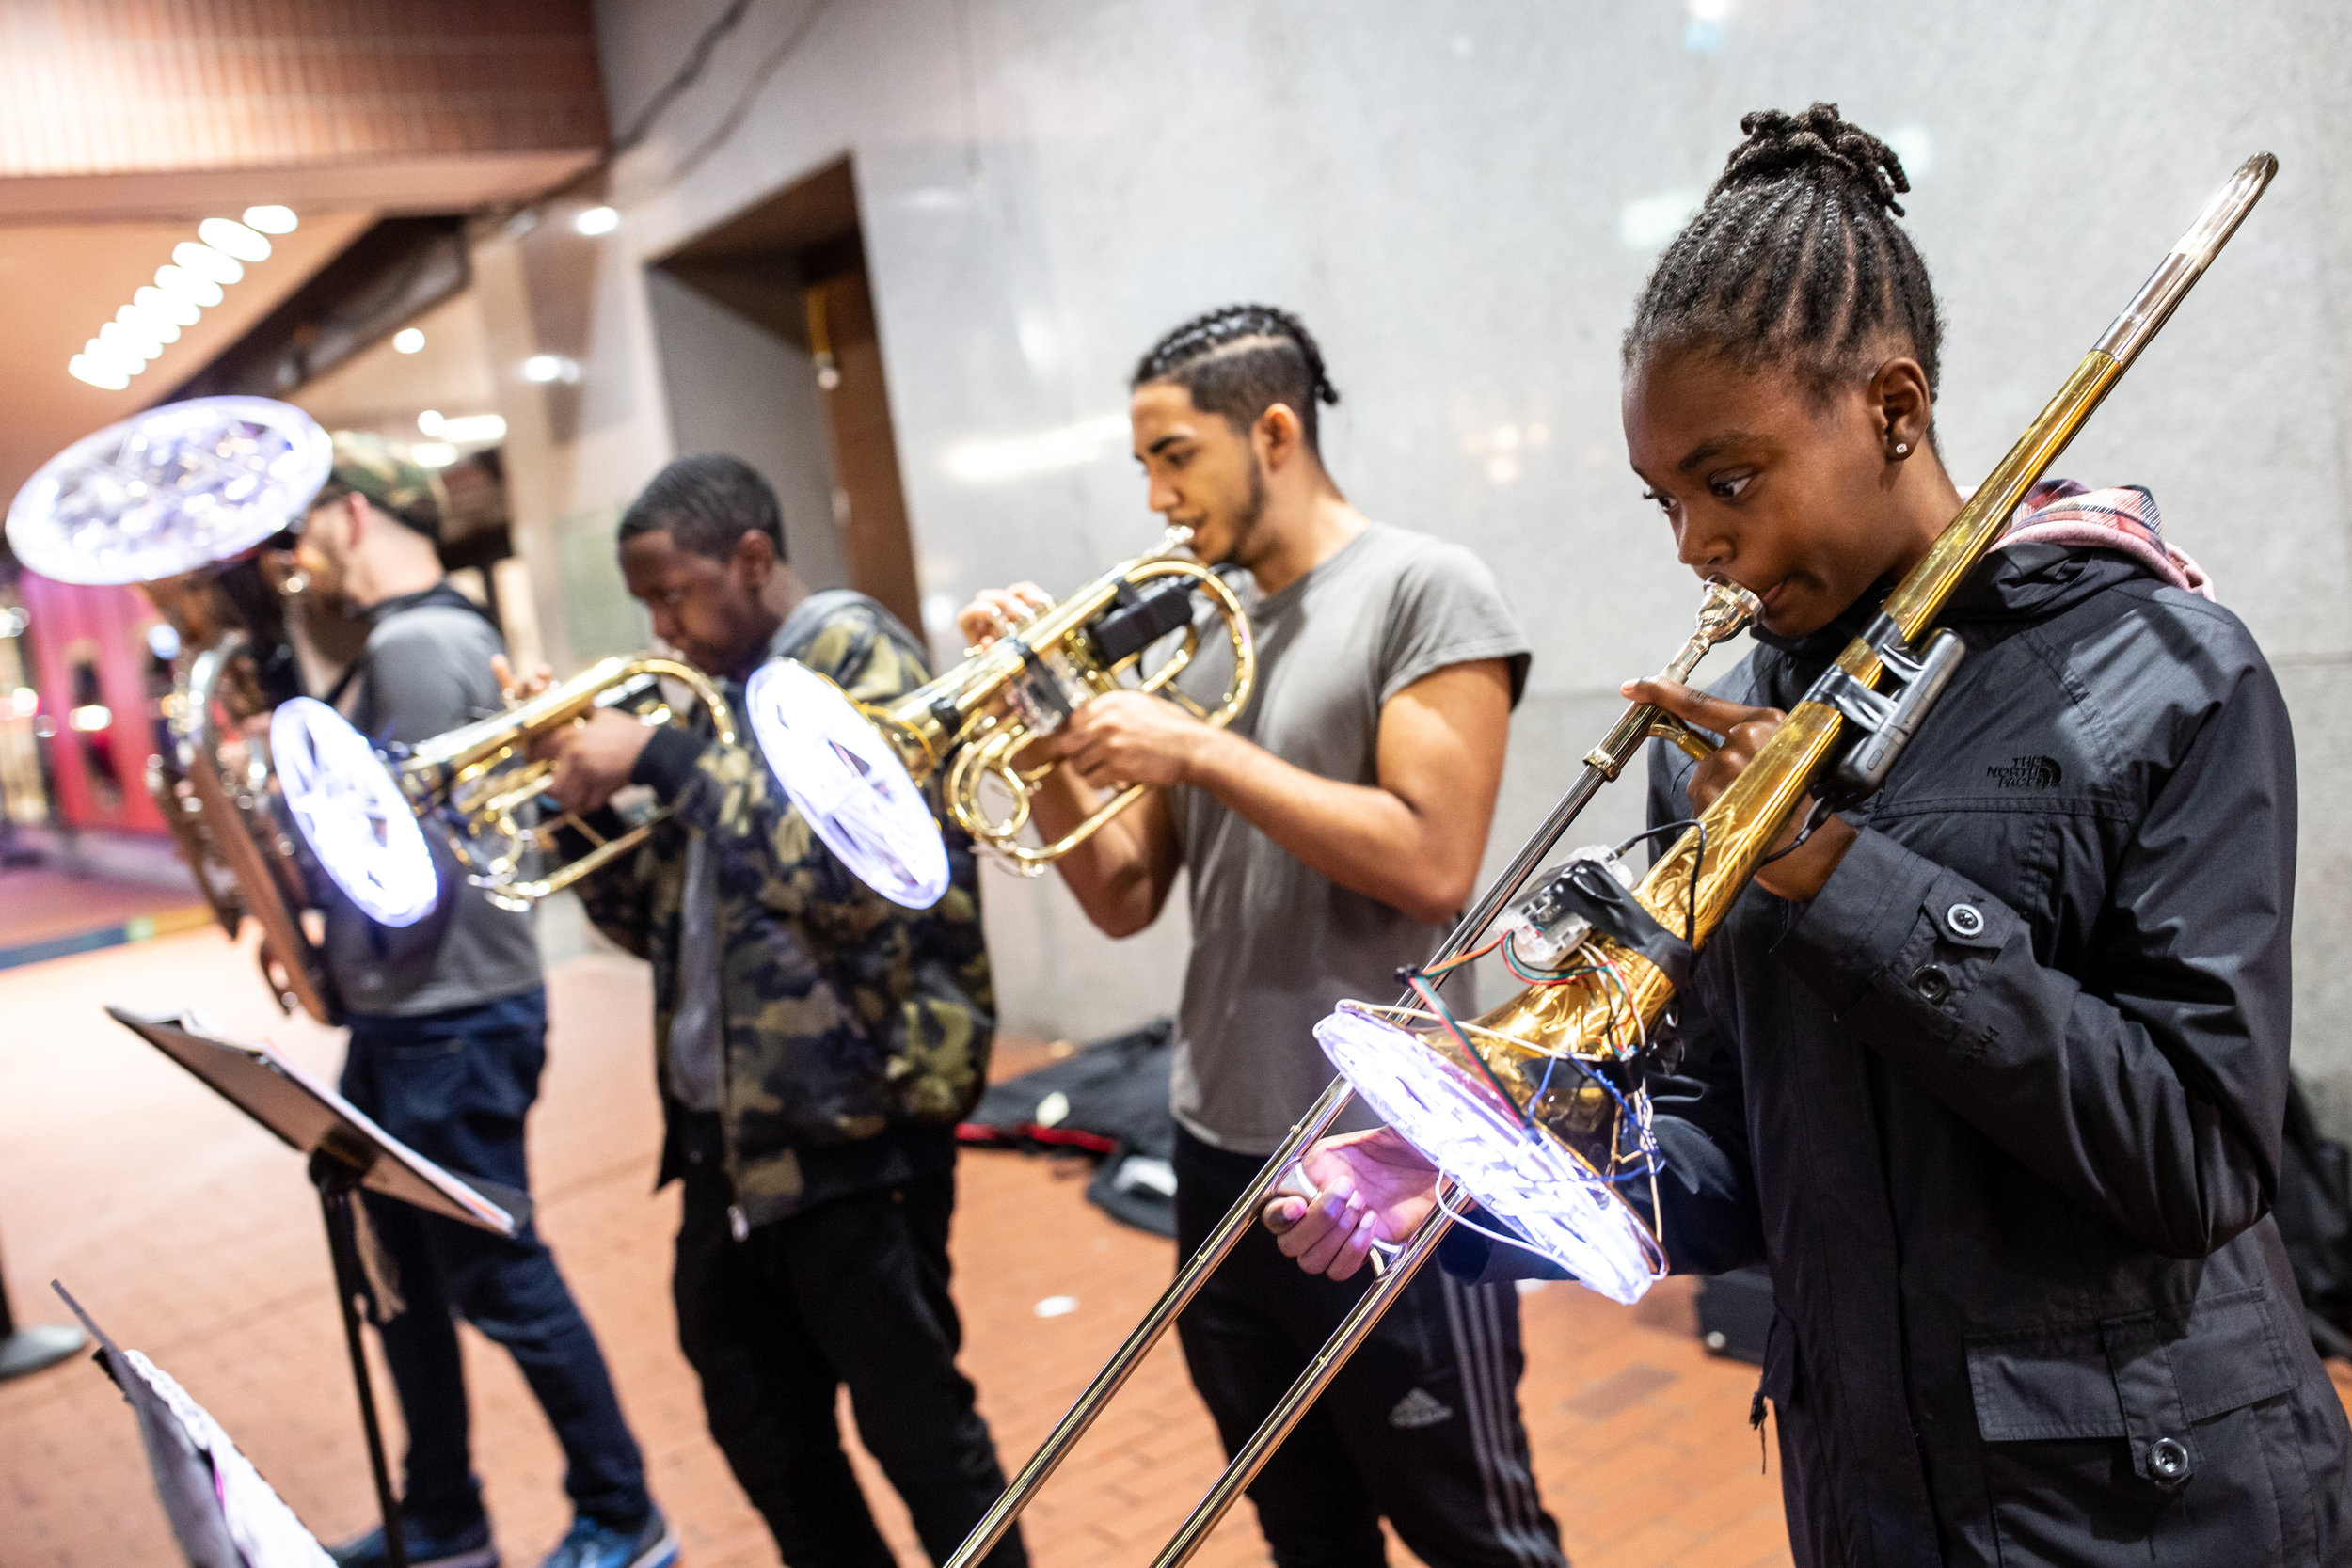 Light It Up_Summer Street Brass Band_Illuminus 2018_Photo by Aram Boghosian_1.jpg